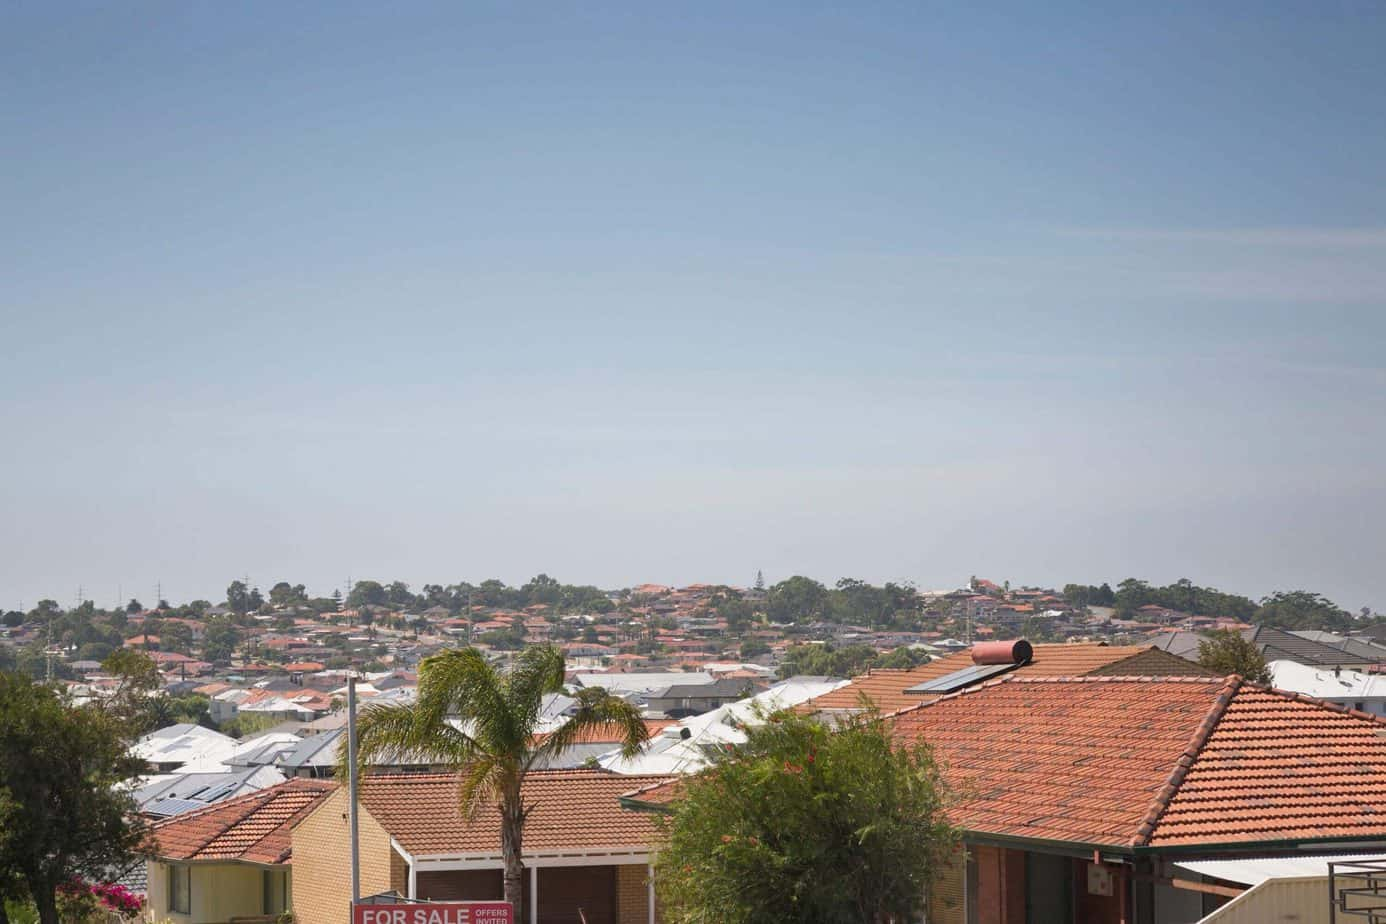 roof tops of a suburb in Western Australia